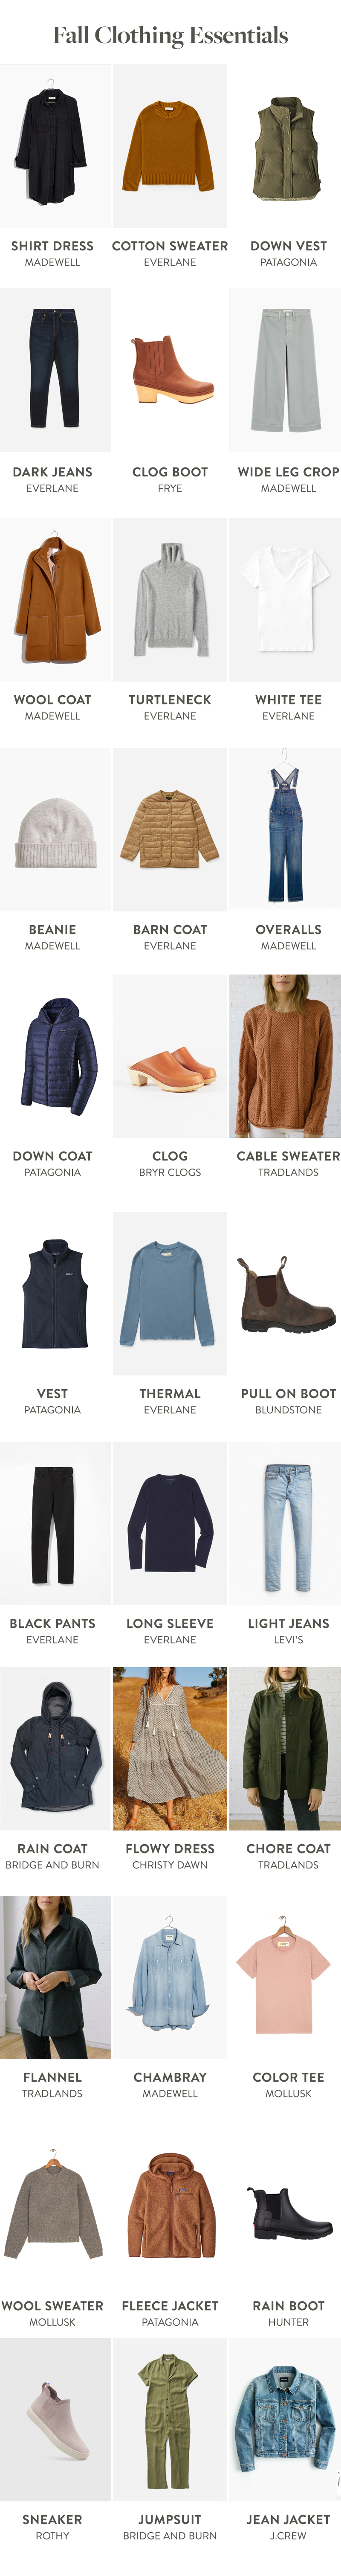 Fall Clothing Essentials to help make the transition from summer to fall easier.